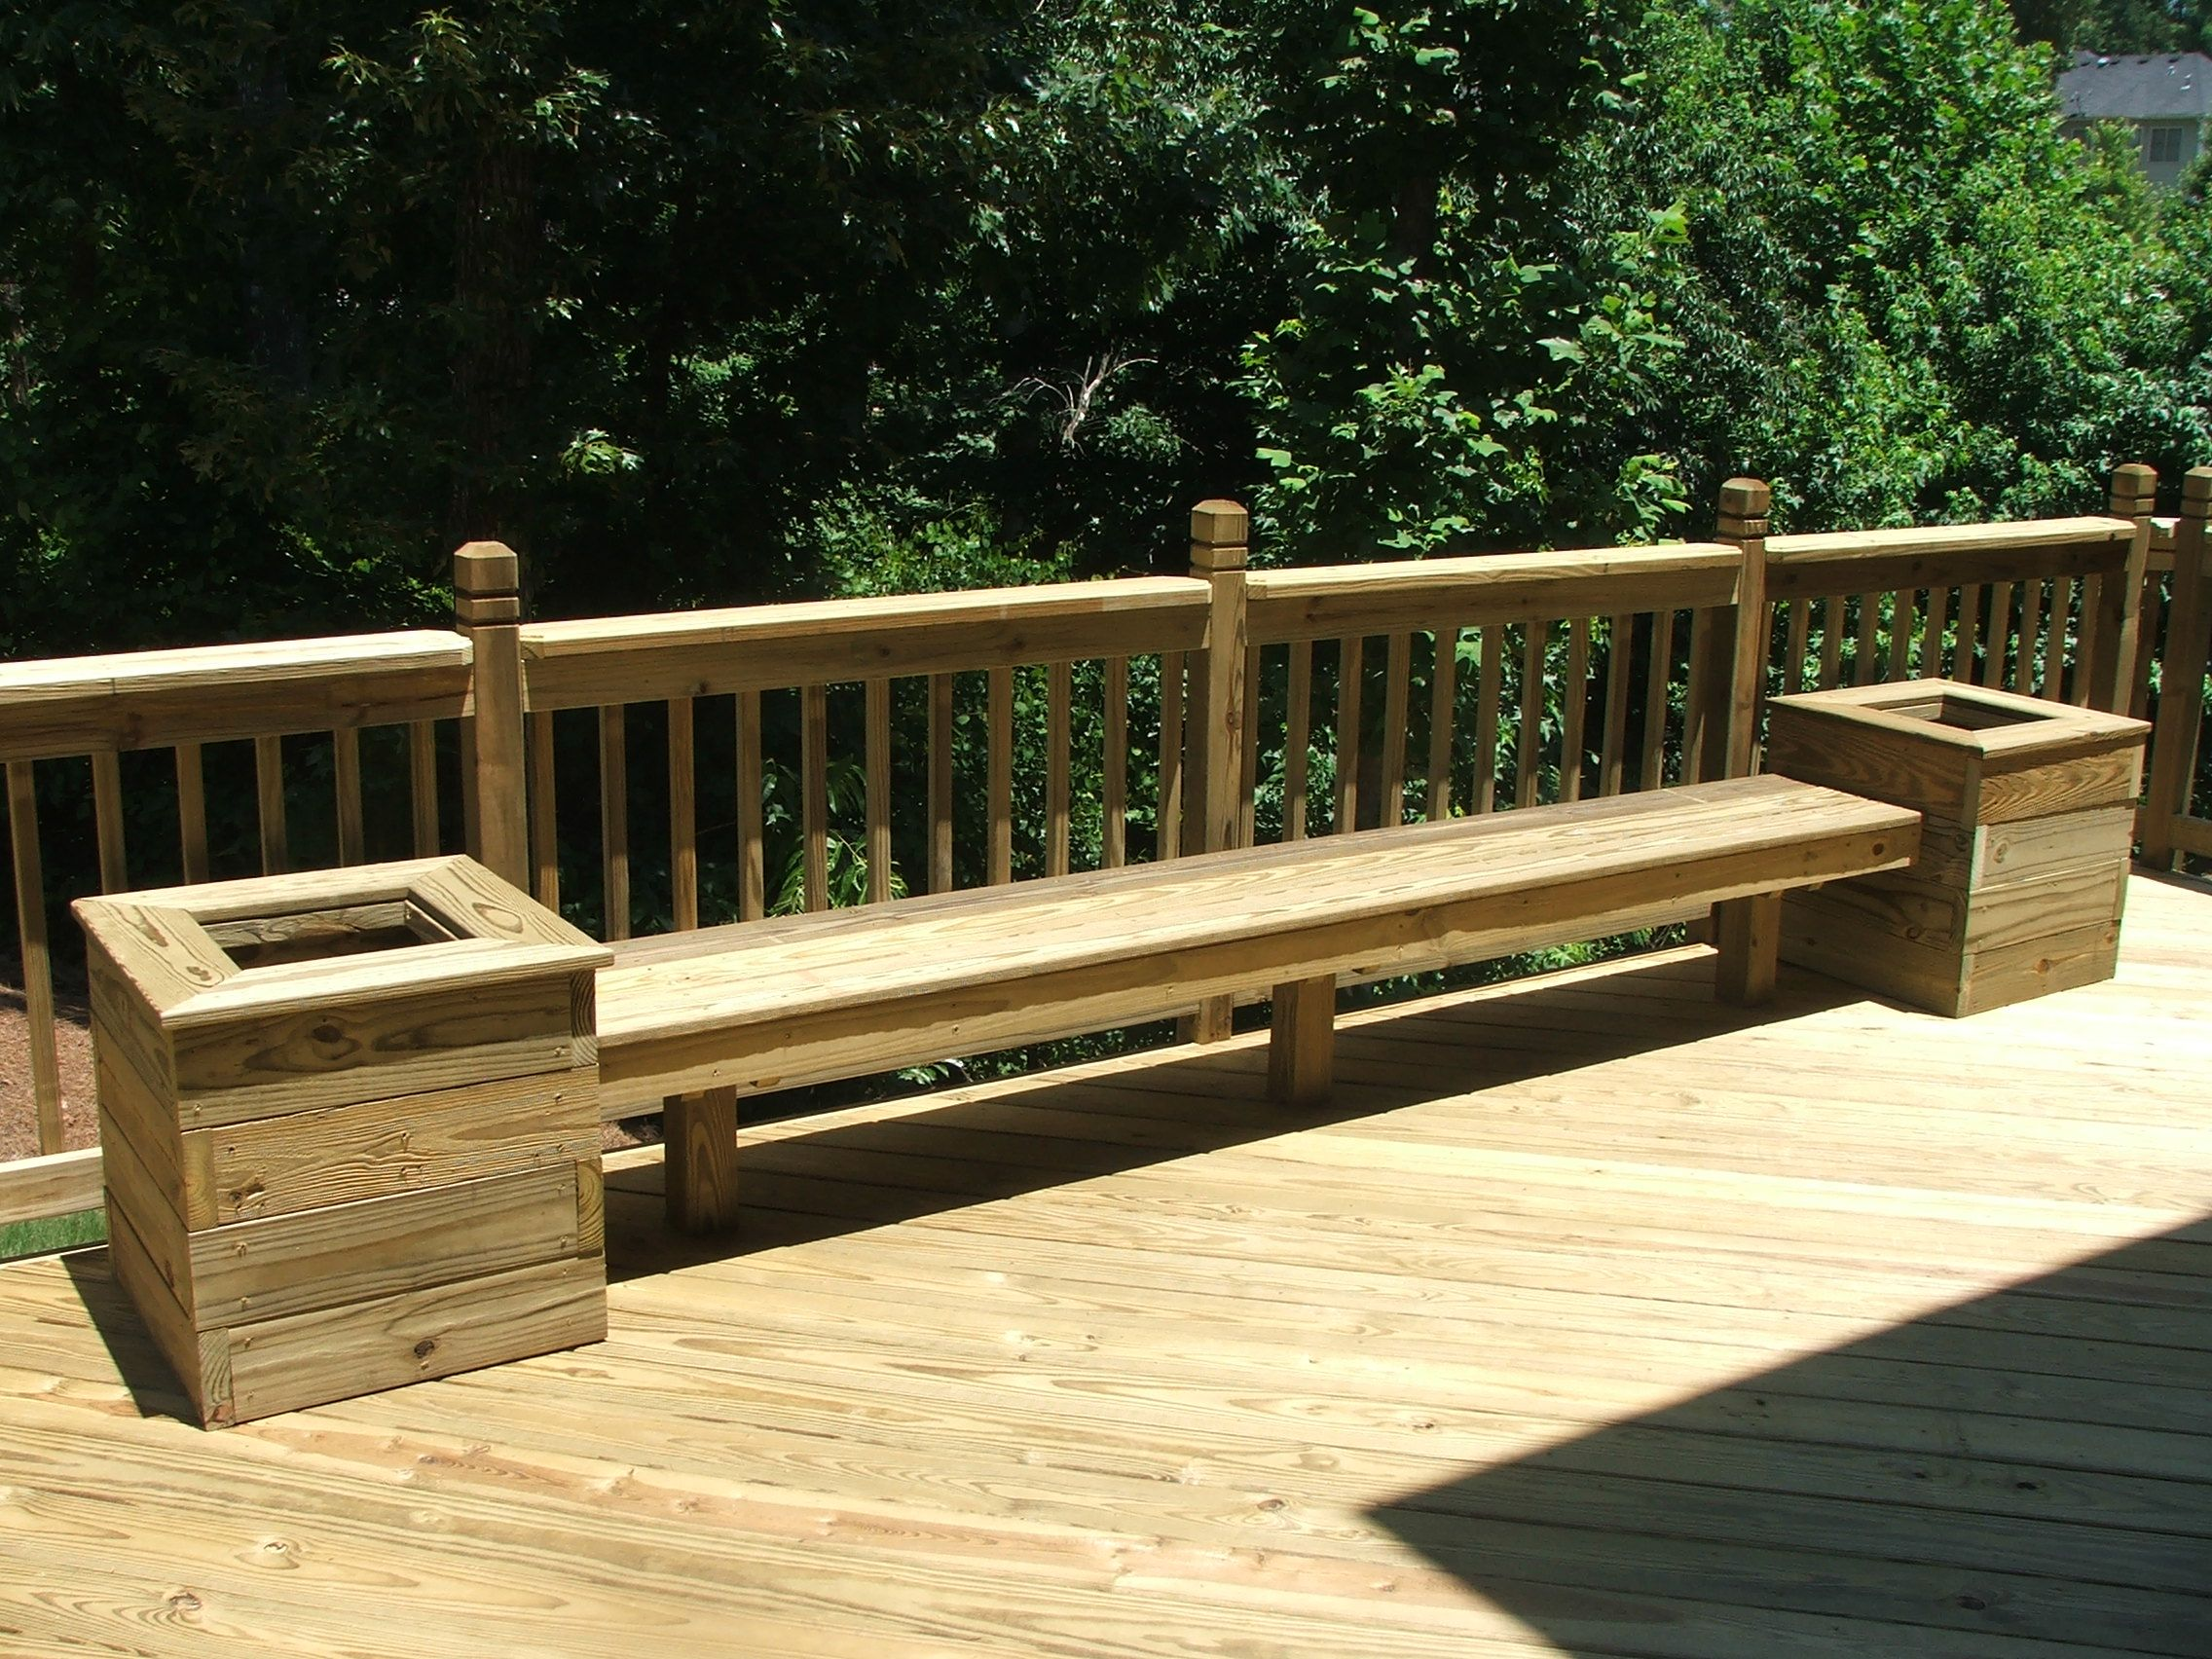 Build benches wplanters for back deck Maybe add a matching table